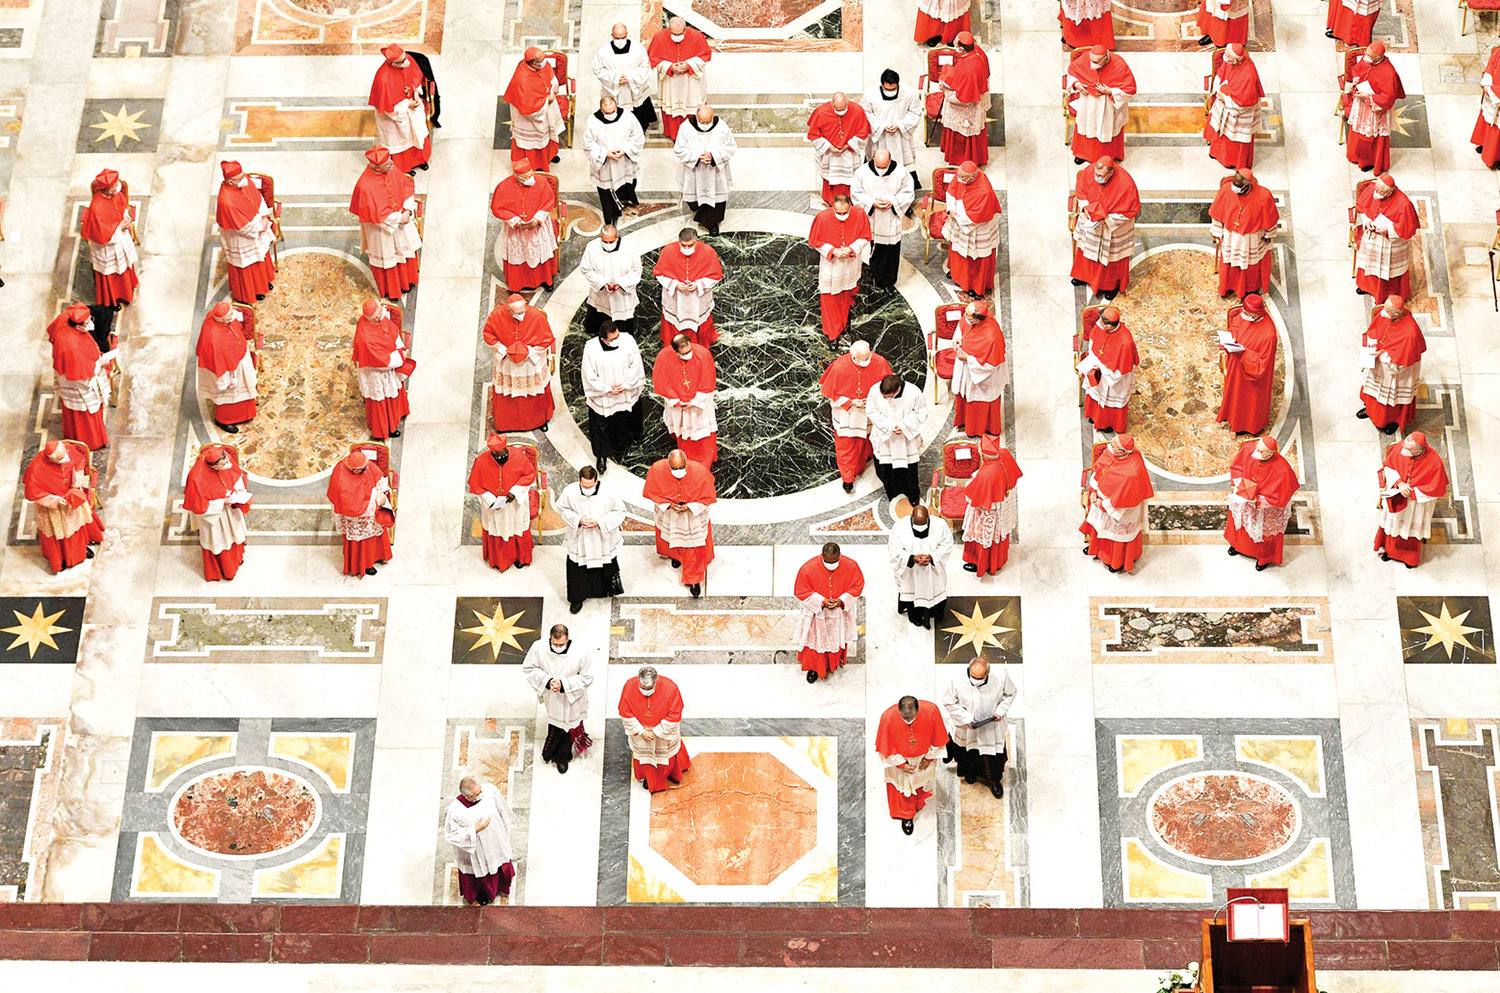 NEW CARDINALS—New cardinals arrive in procession at a consistory led by Pope Francis for the creation of 13 new cardinals in St. Peter's Basilica at the Vatican Nov. 28.